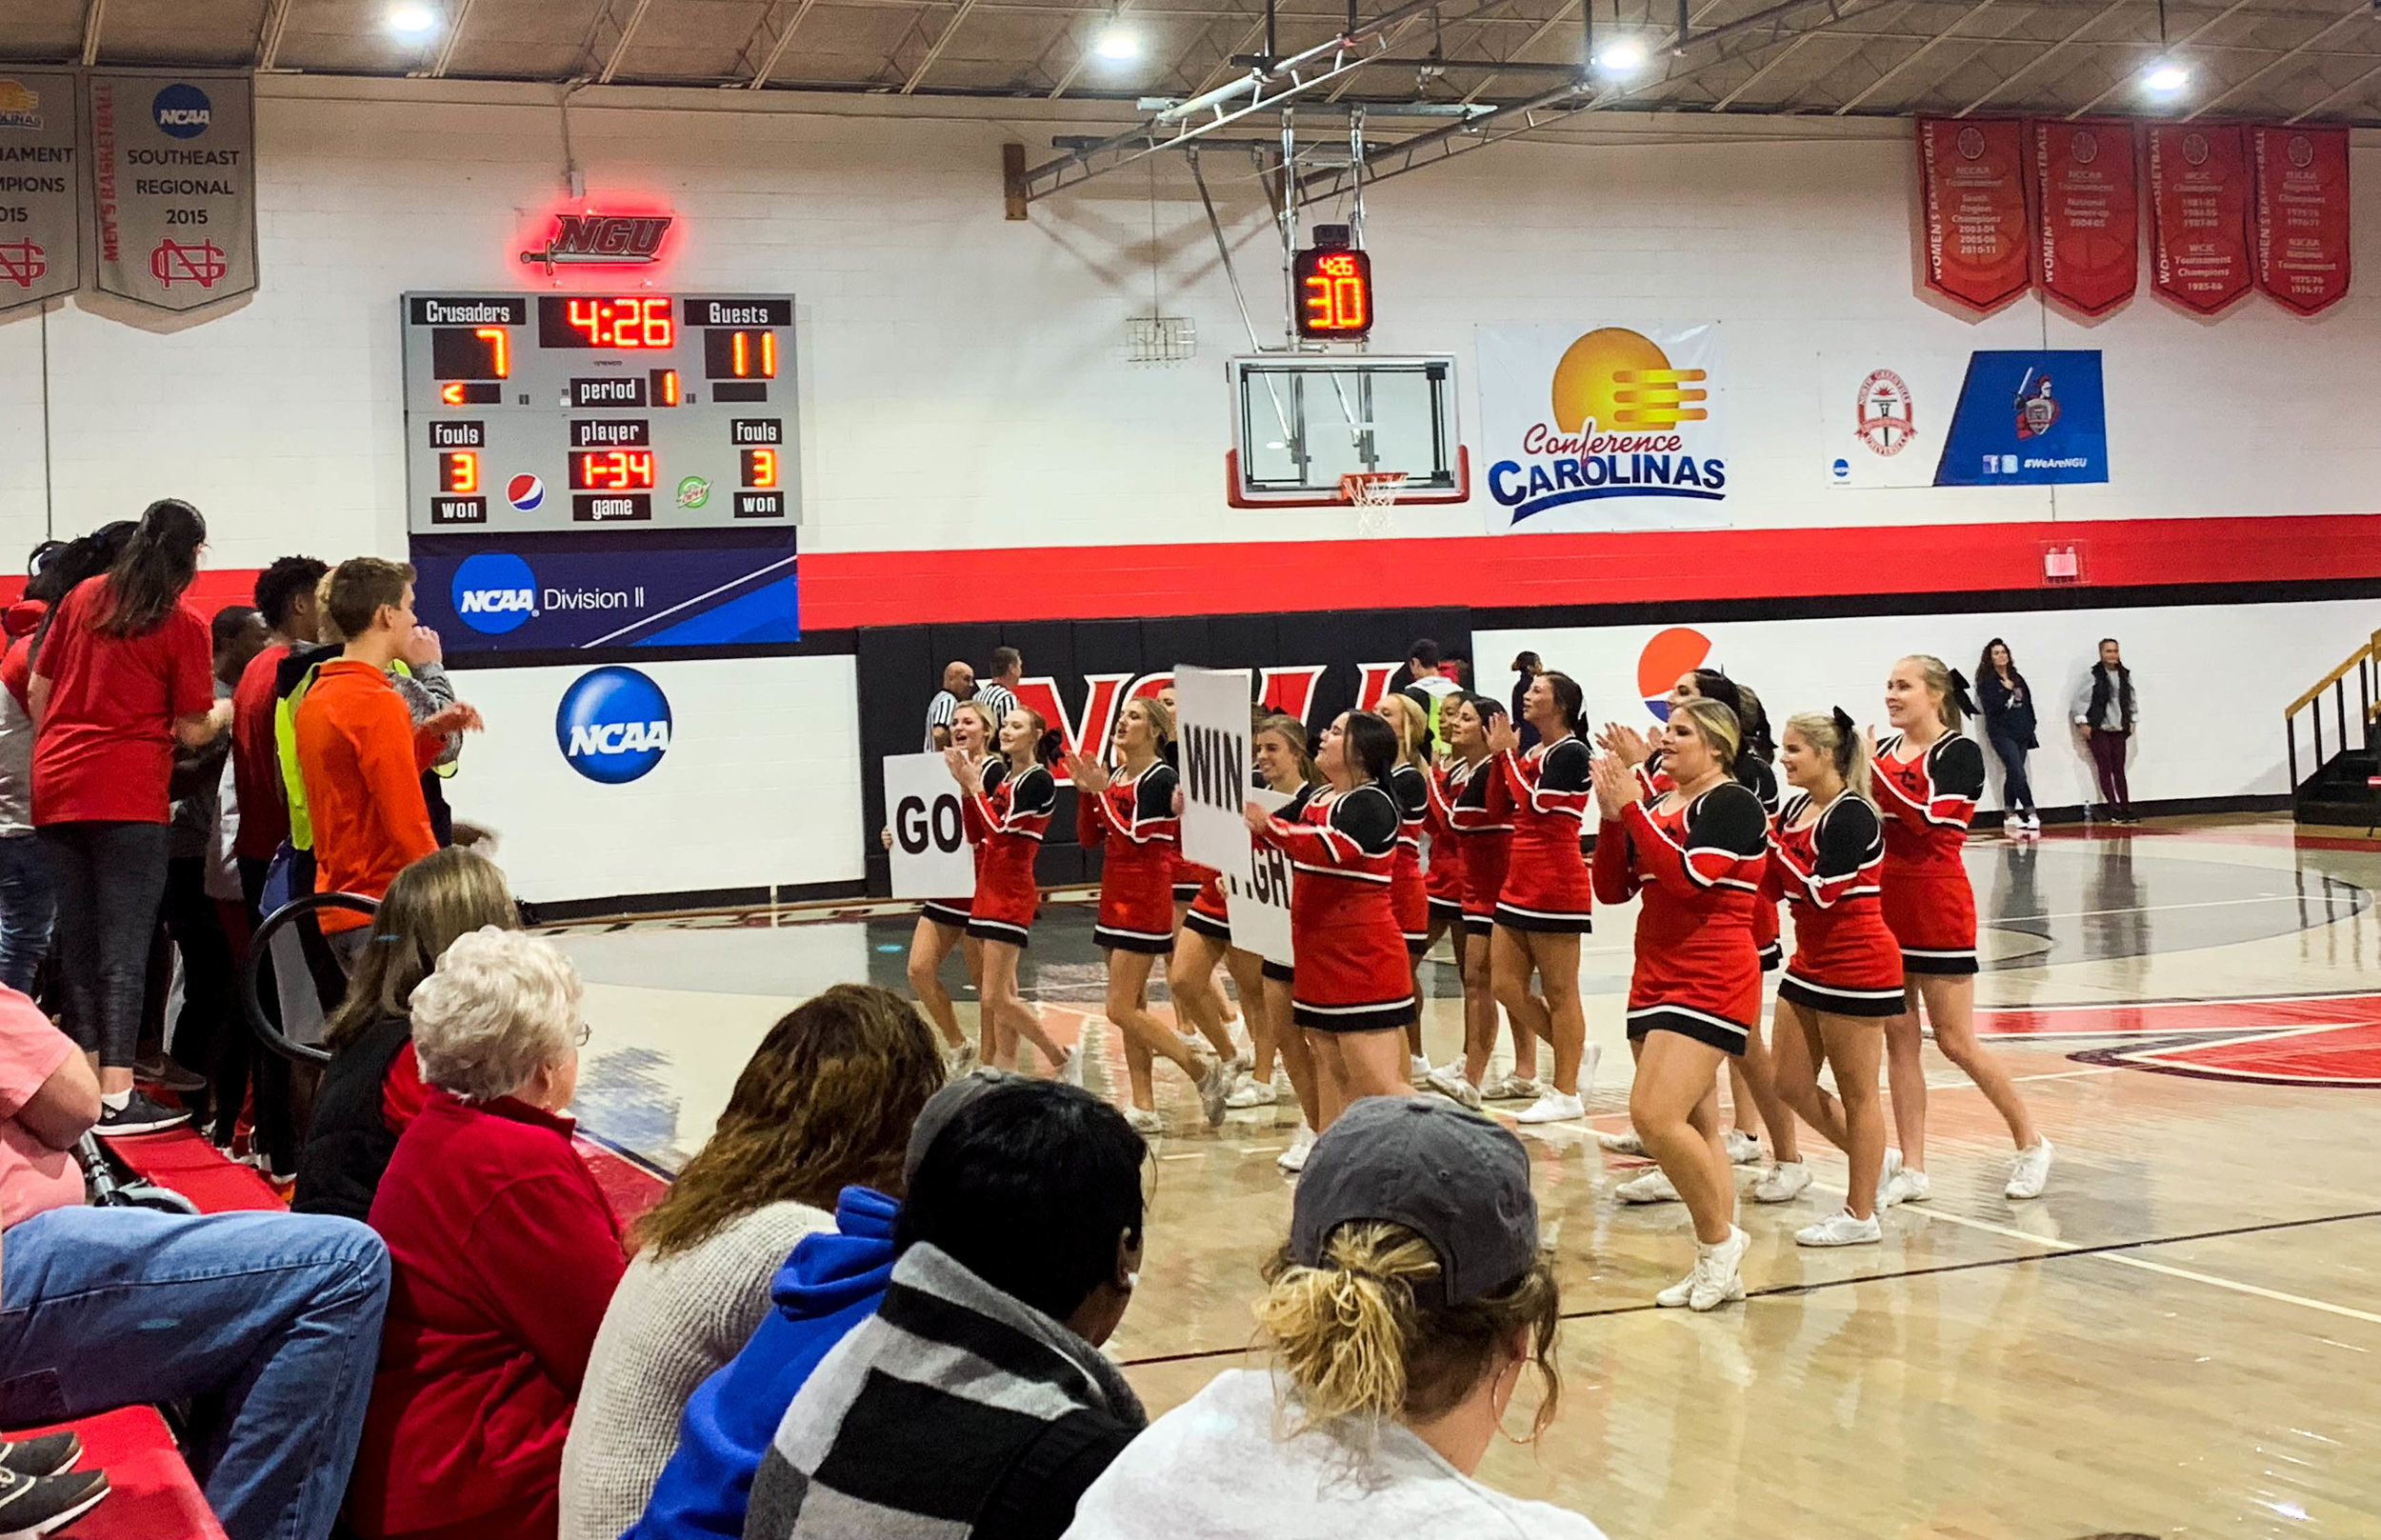 During a time out, the NGU cheerleaders take the court in front of the student section to lead them in a cheer.